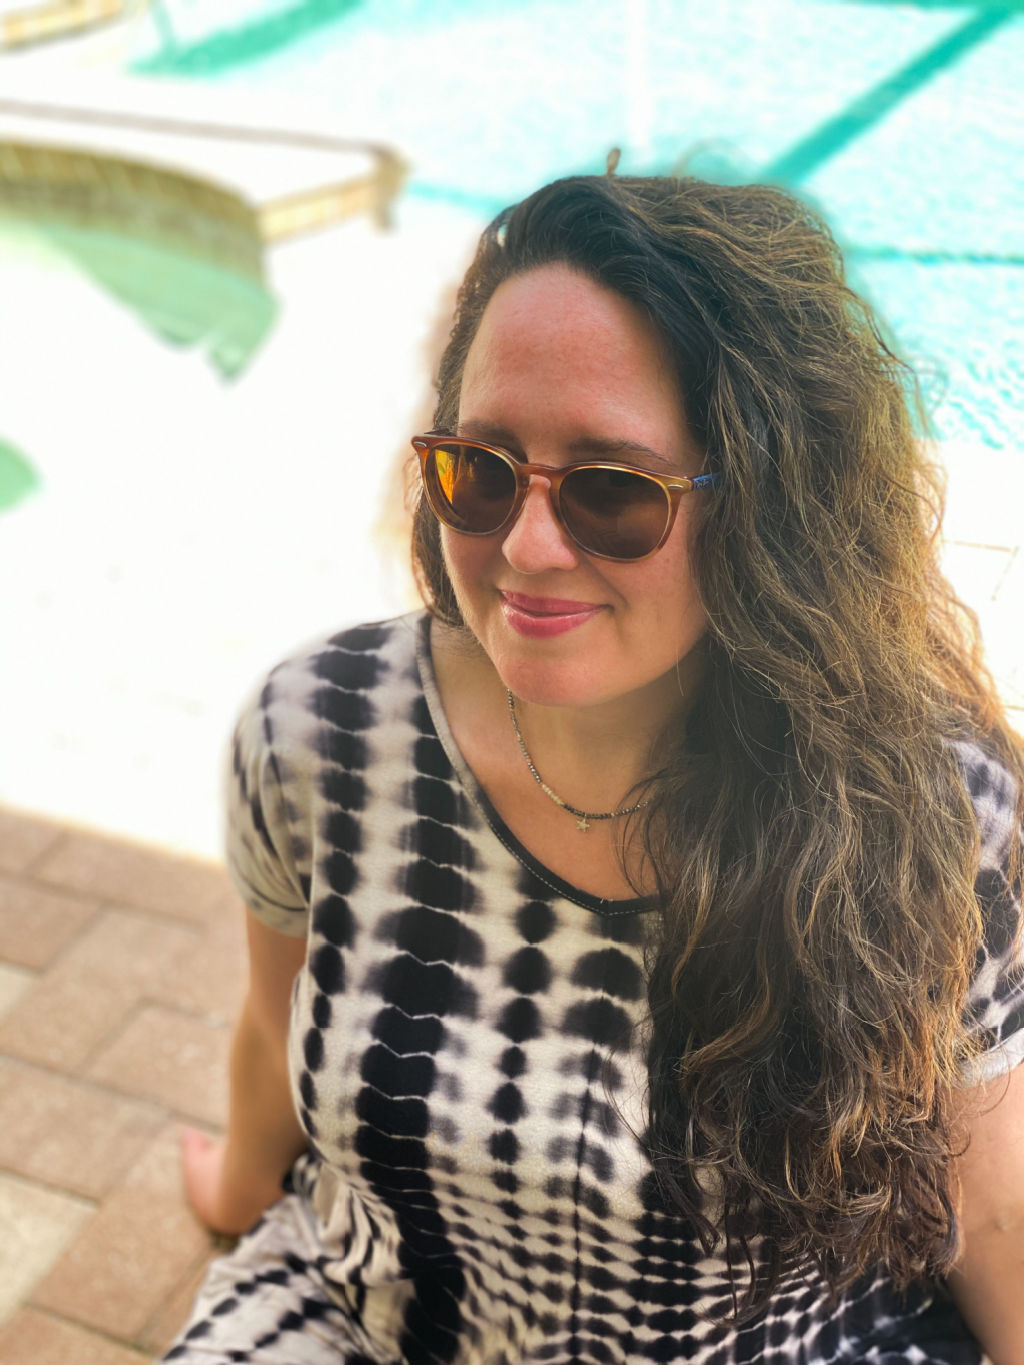 woman with curly brown hair wearing brown sunglasses and black and white tie dye dress in front of a pool